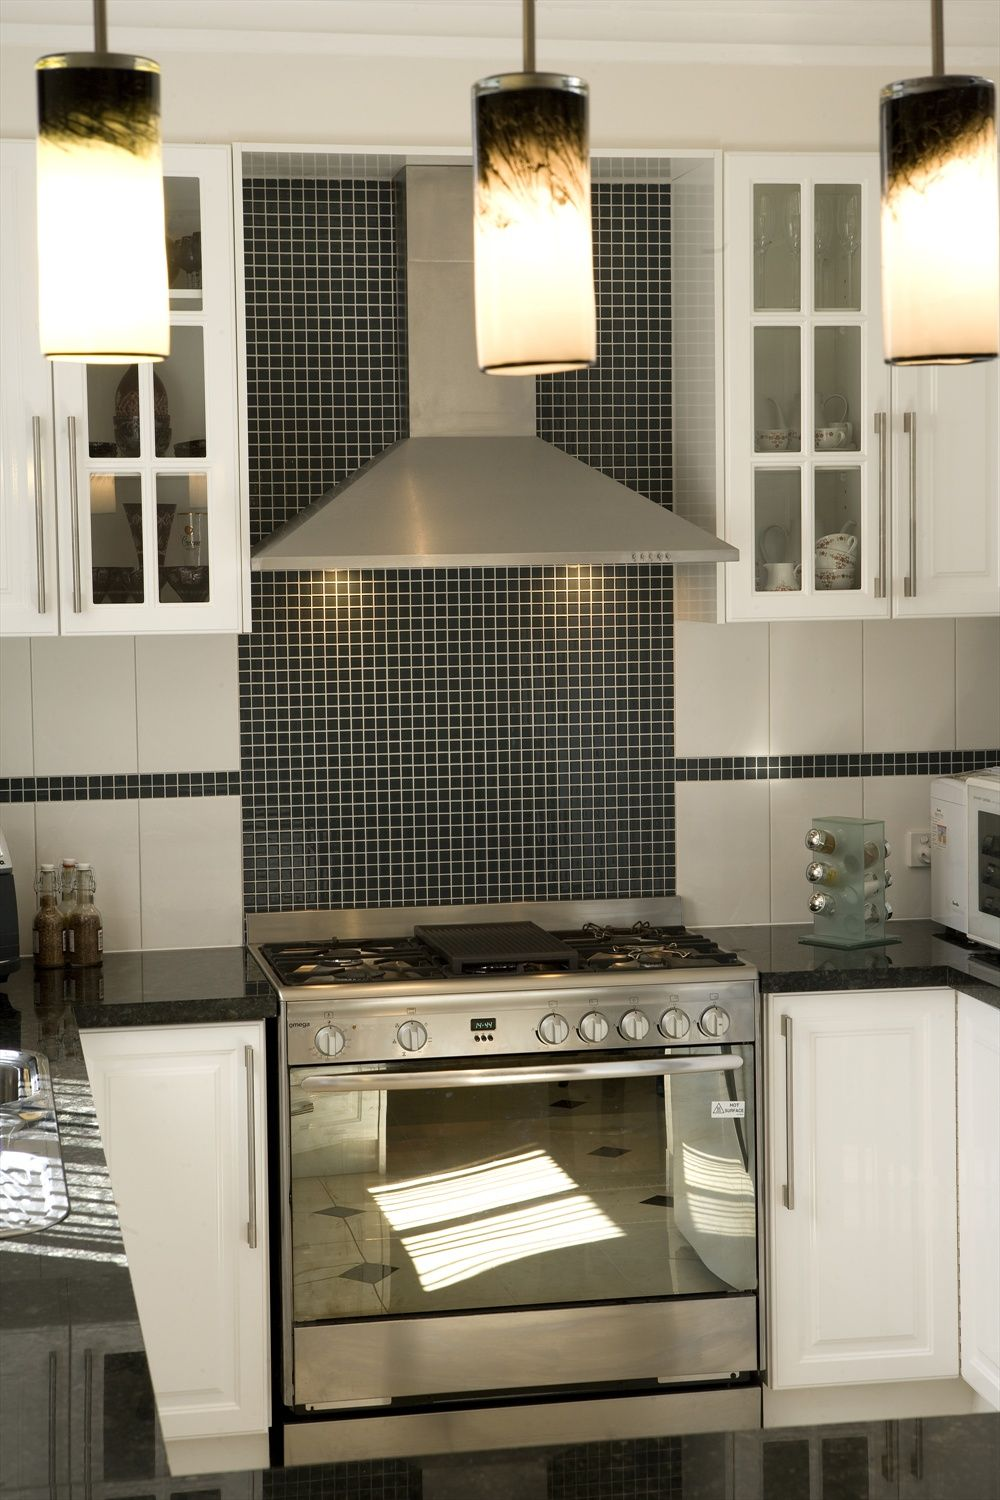 Kitchen Interior Fittings Love These Kitchen Tiles The Light Fittings Are Cool Too Ideas